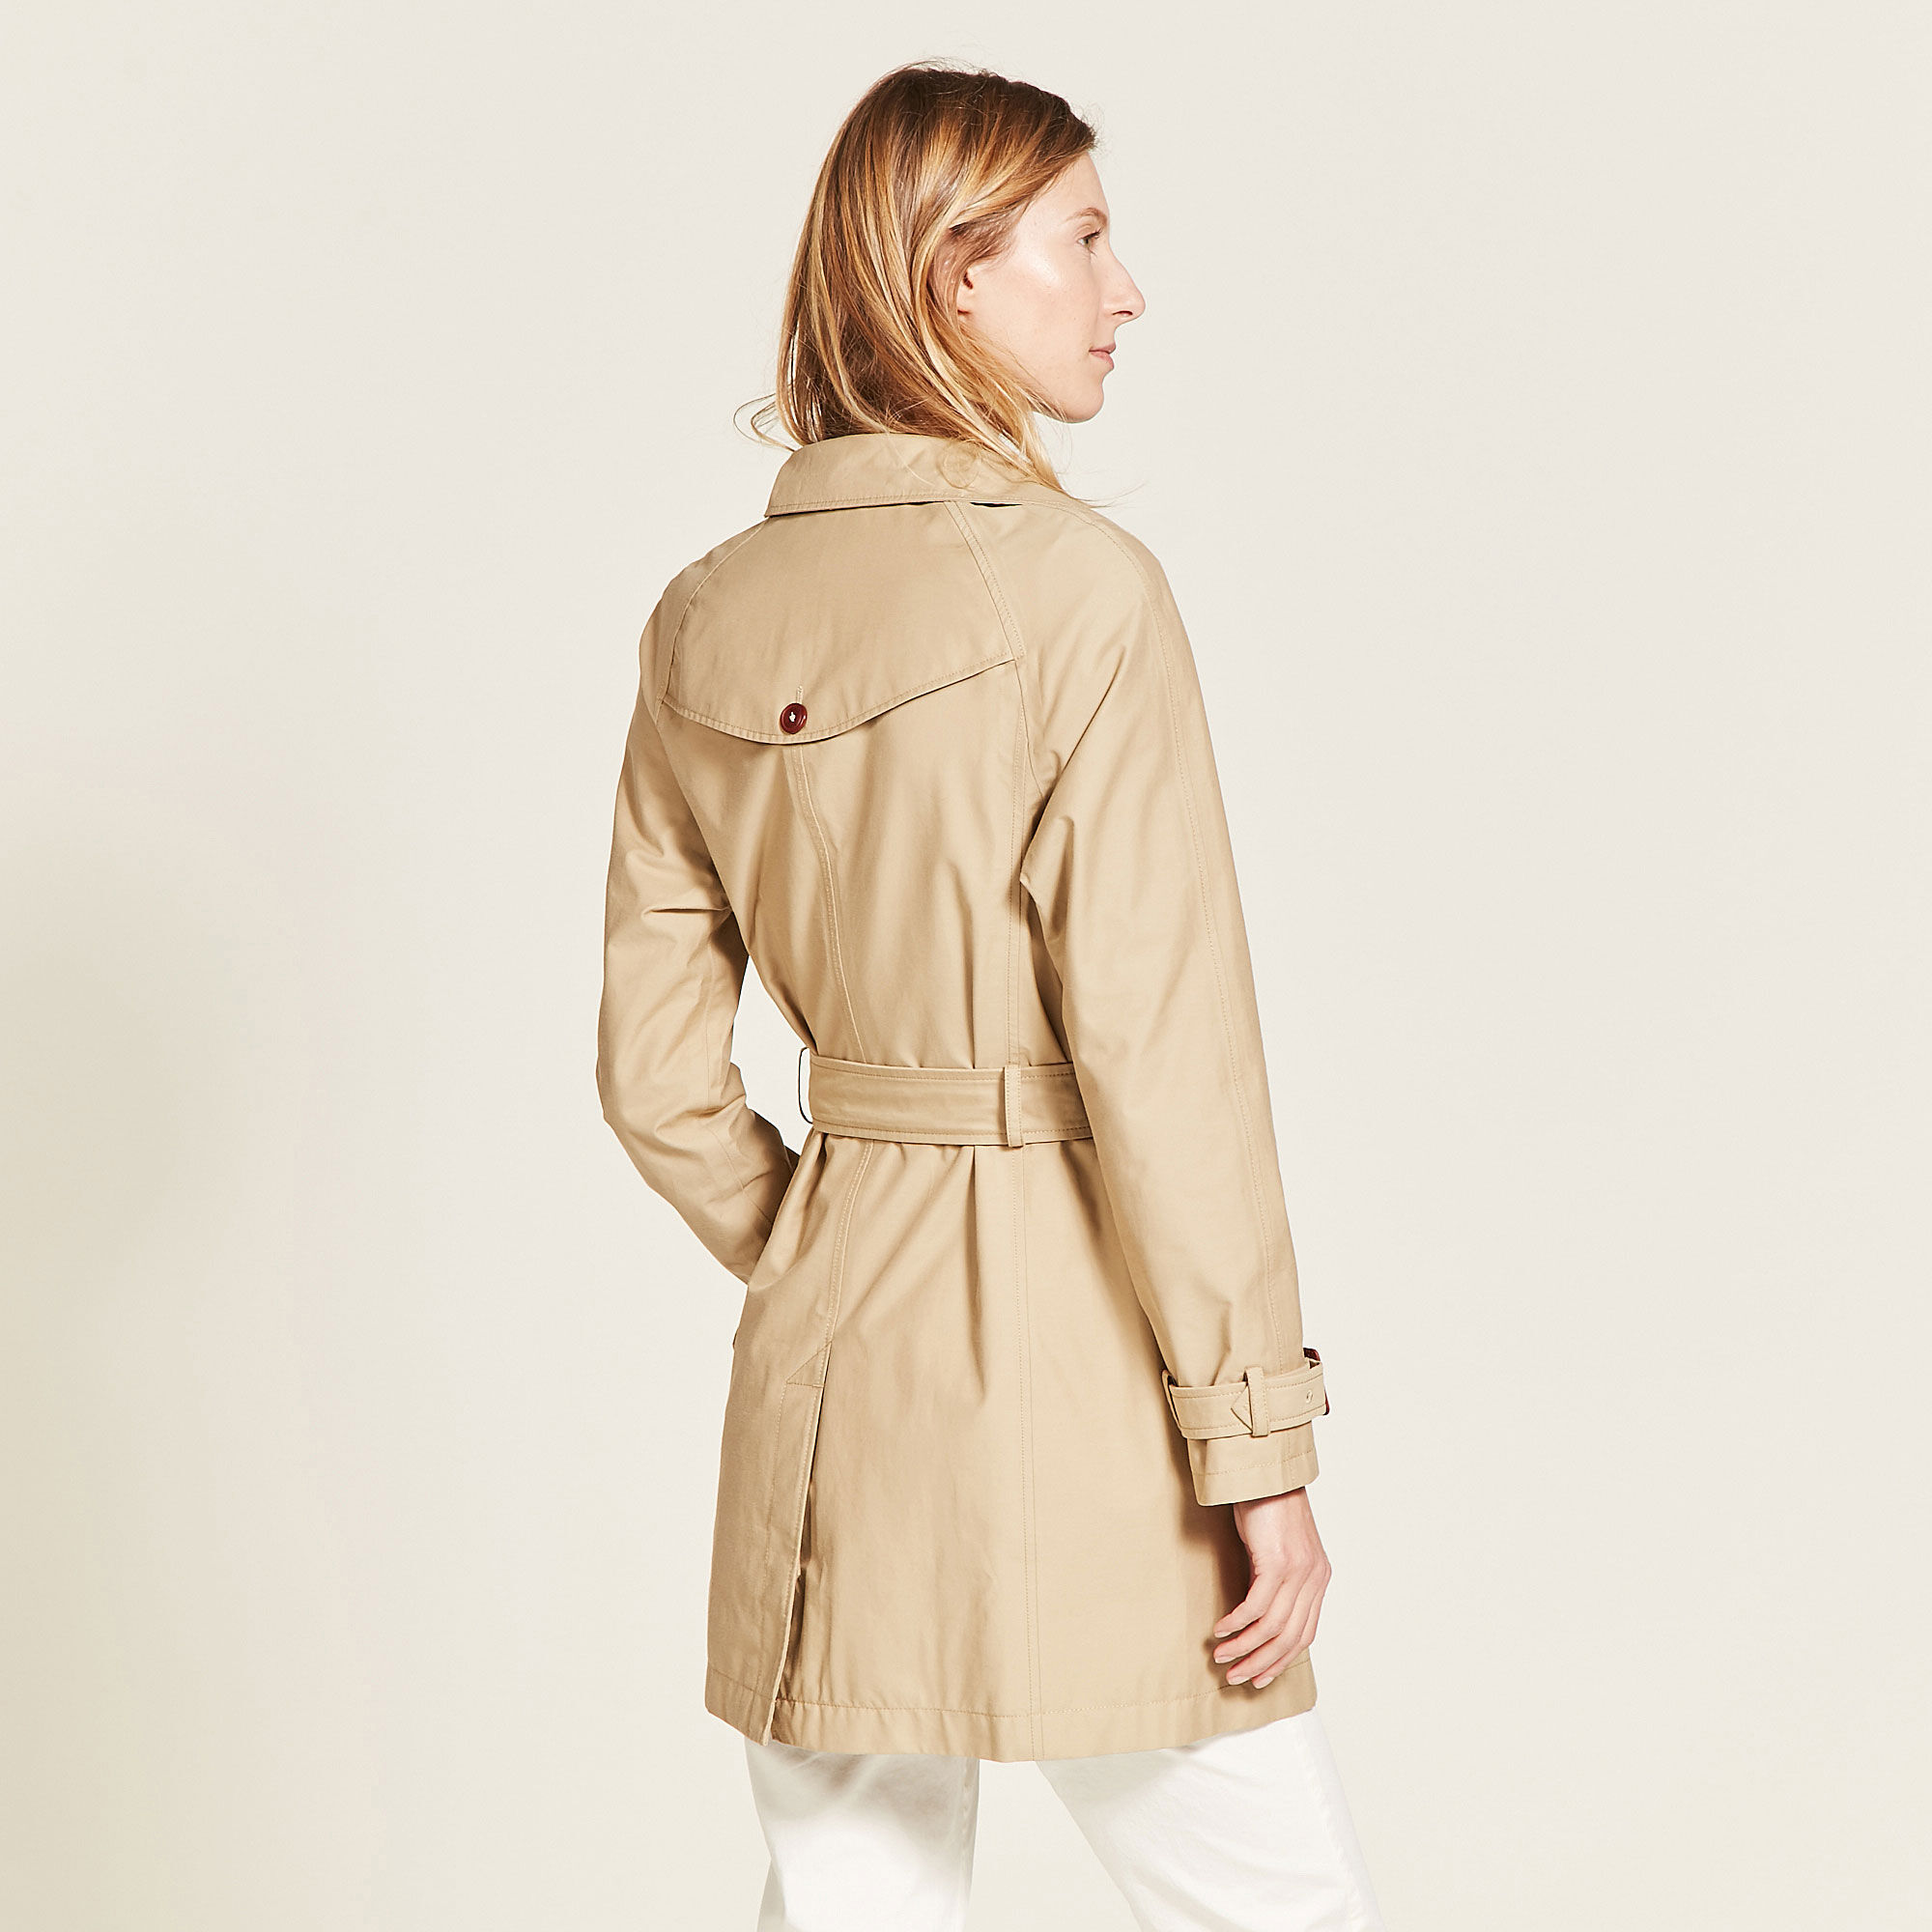 Aigle Imperméable Femme Trench Trench Aigle Imperméable Femme Trench FqBSvxBdCw